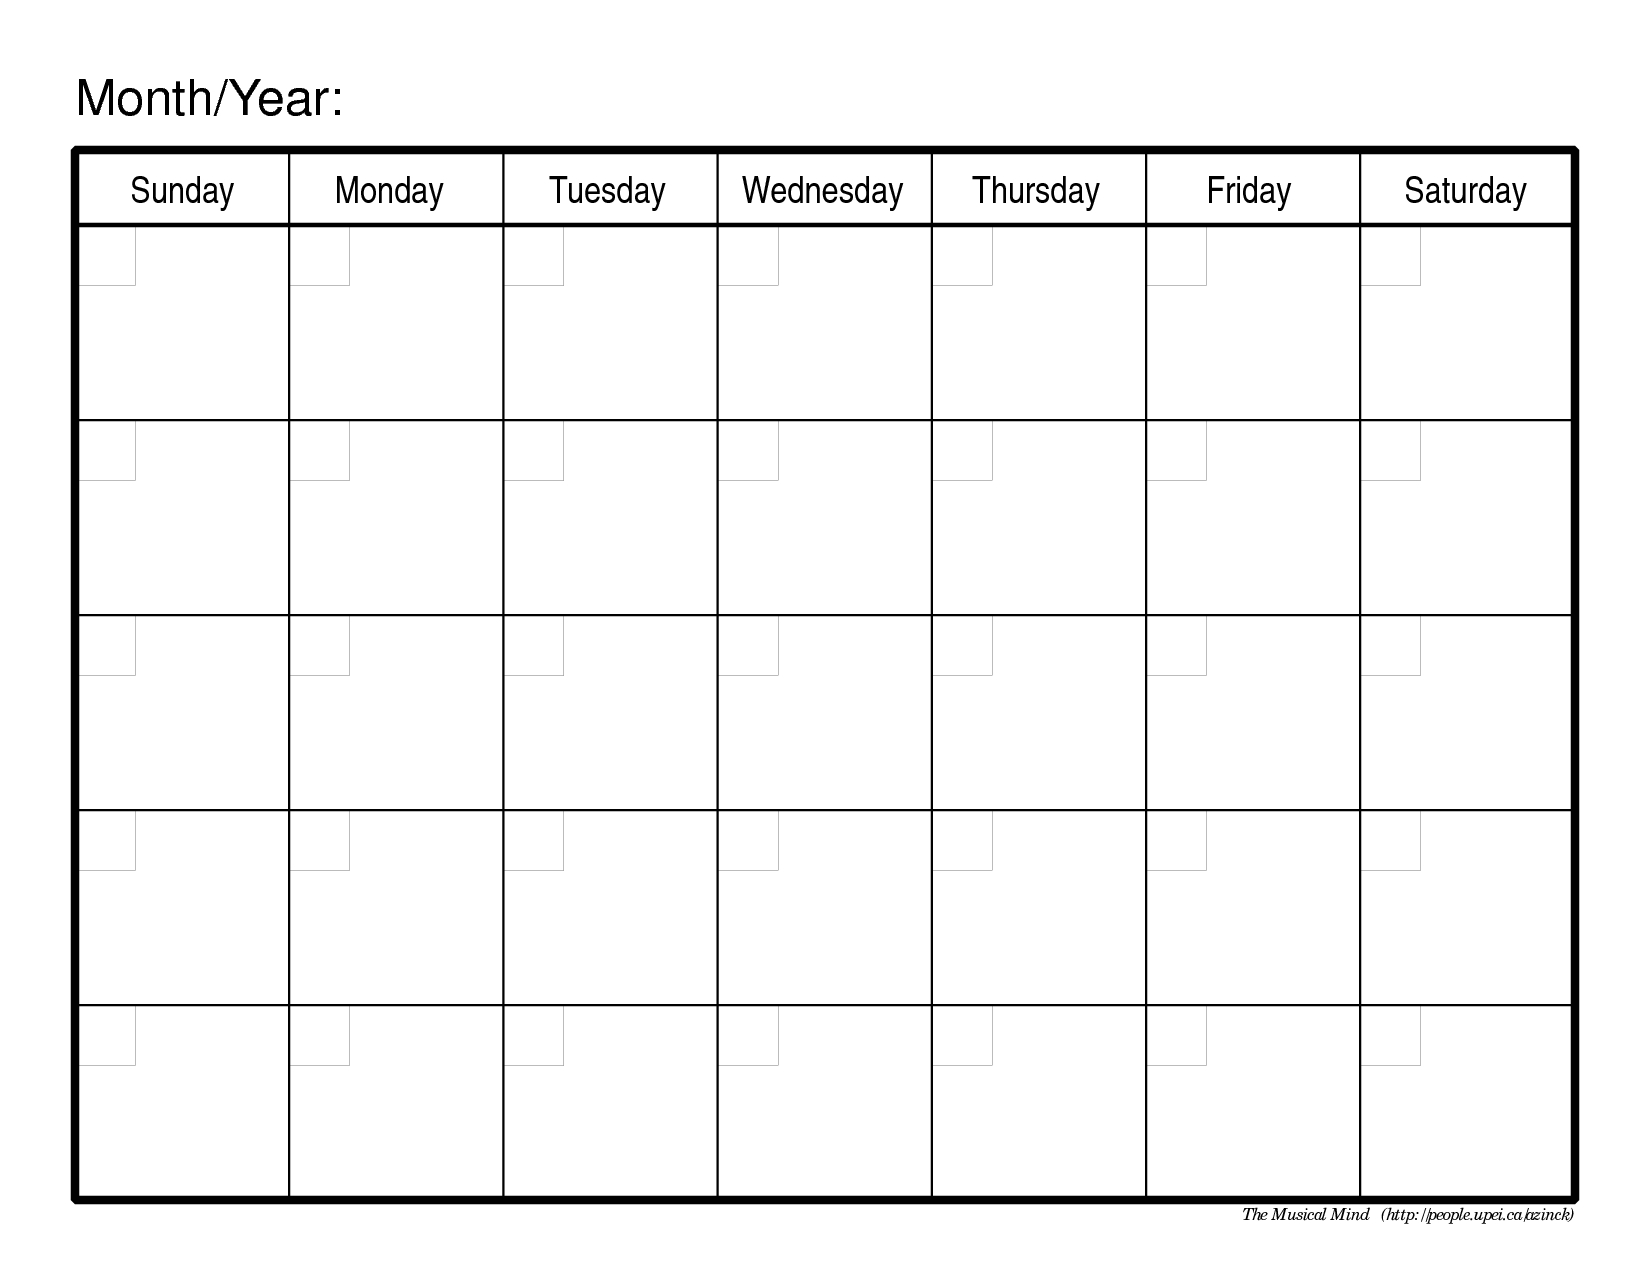 Calendar Templates Printable Free Fieldstationco  Self Discovery With Blank Calender Template